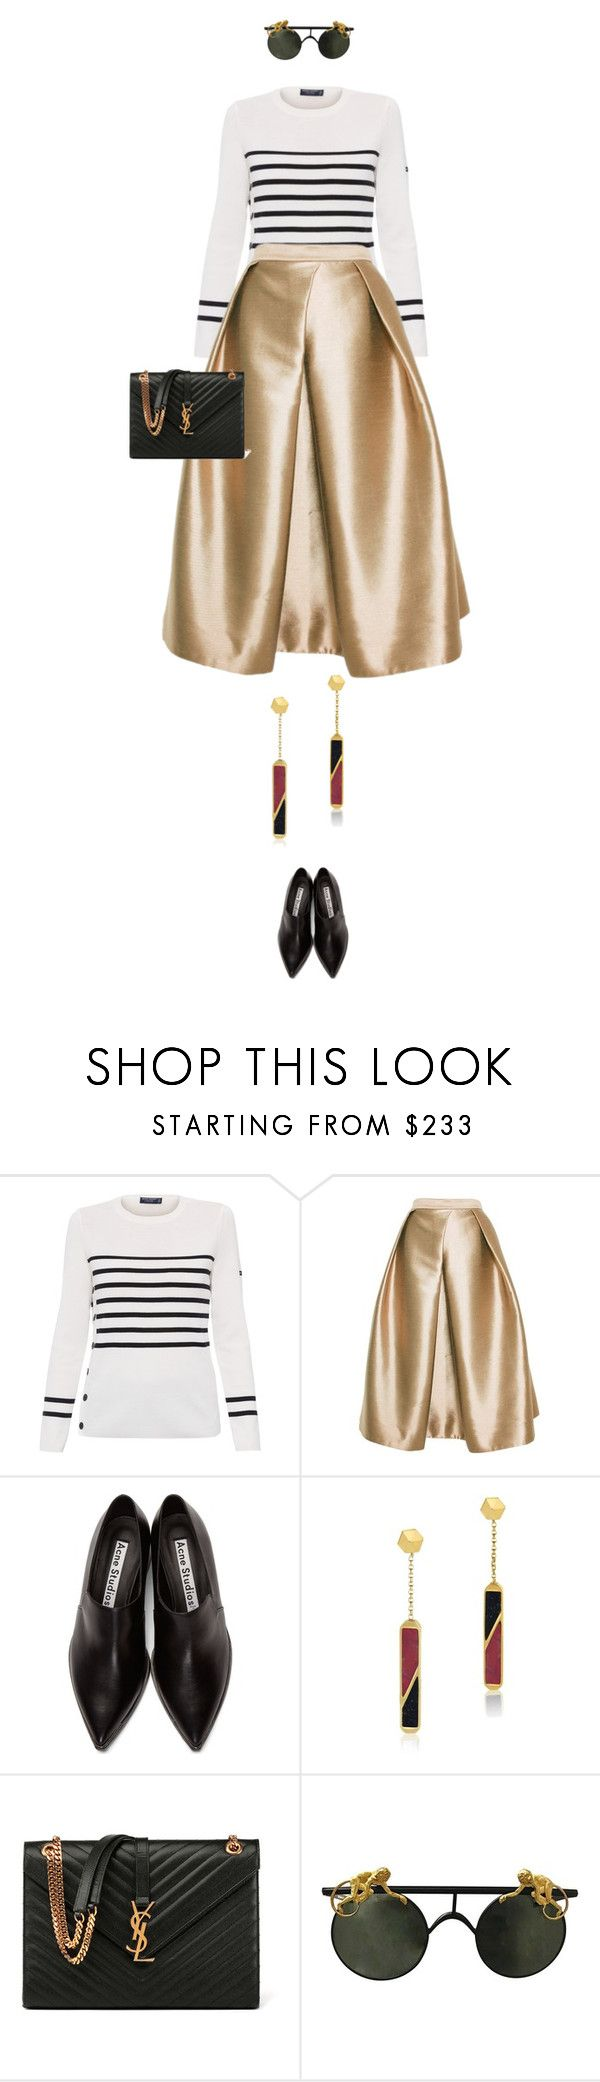 """""""eva1408"""" by evava-c ❤ liked on Polyvore featuring Saint James, TIBI, Acne Studios, Edge of Ember and Yves Saint Laurent"""